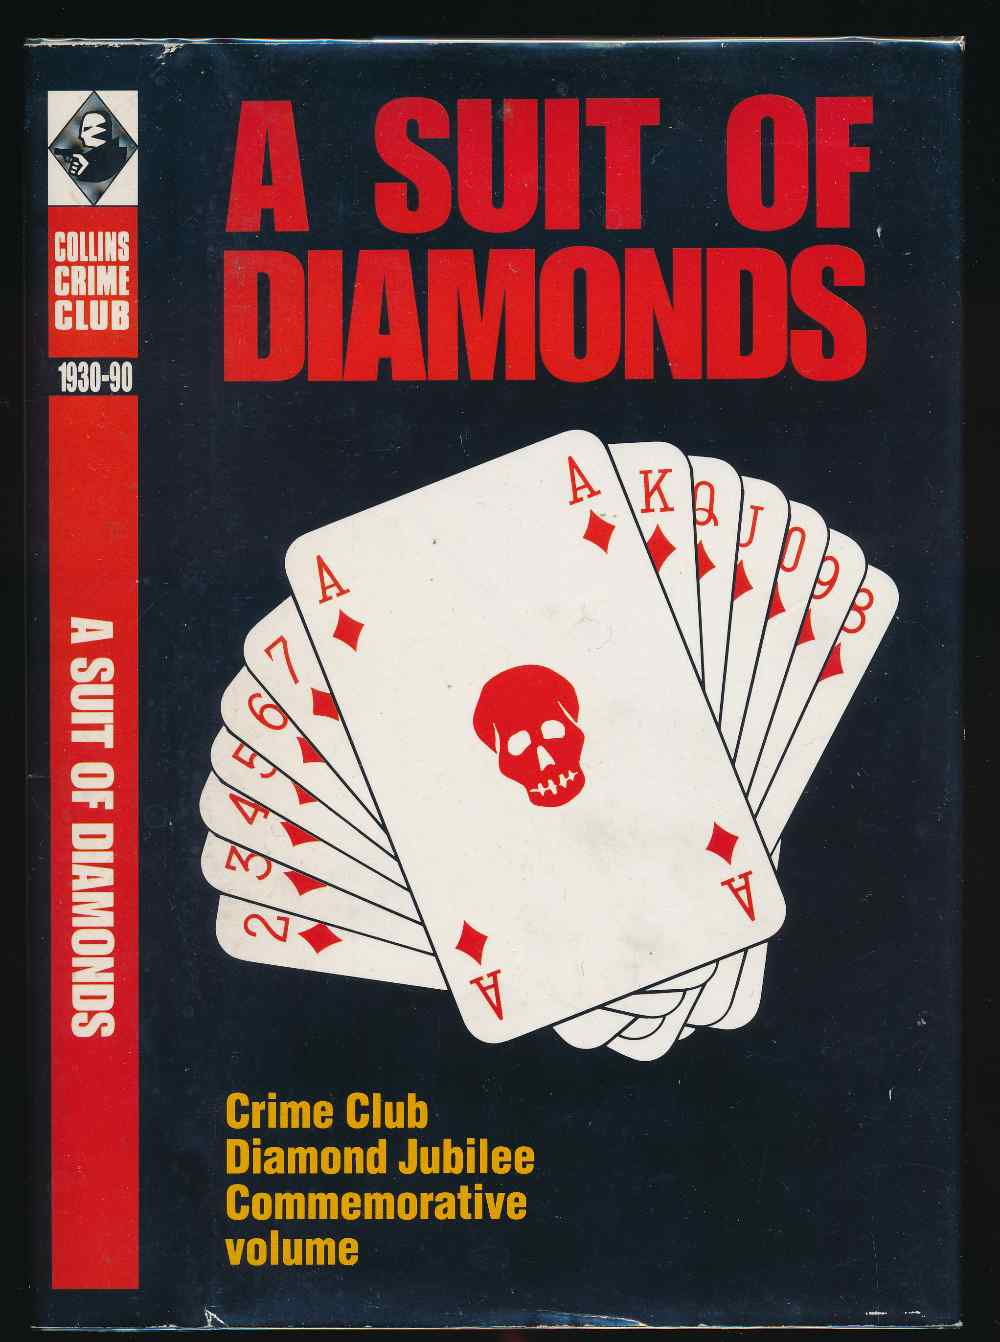 A suit of diamonds : a commemorative volume of specially commissioned short stories, published to celebrate the Crime Club's diamond jubilee